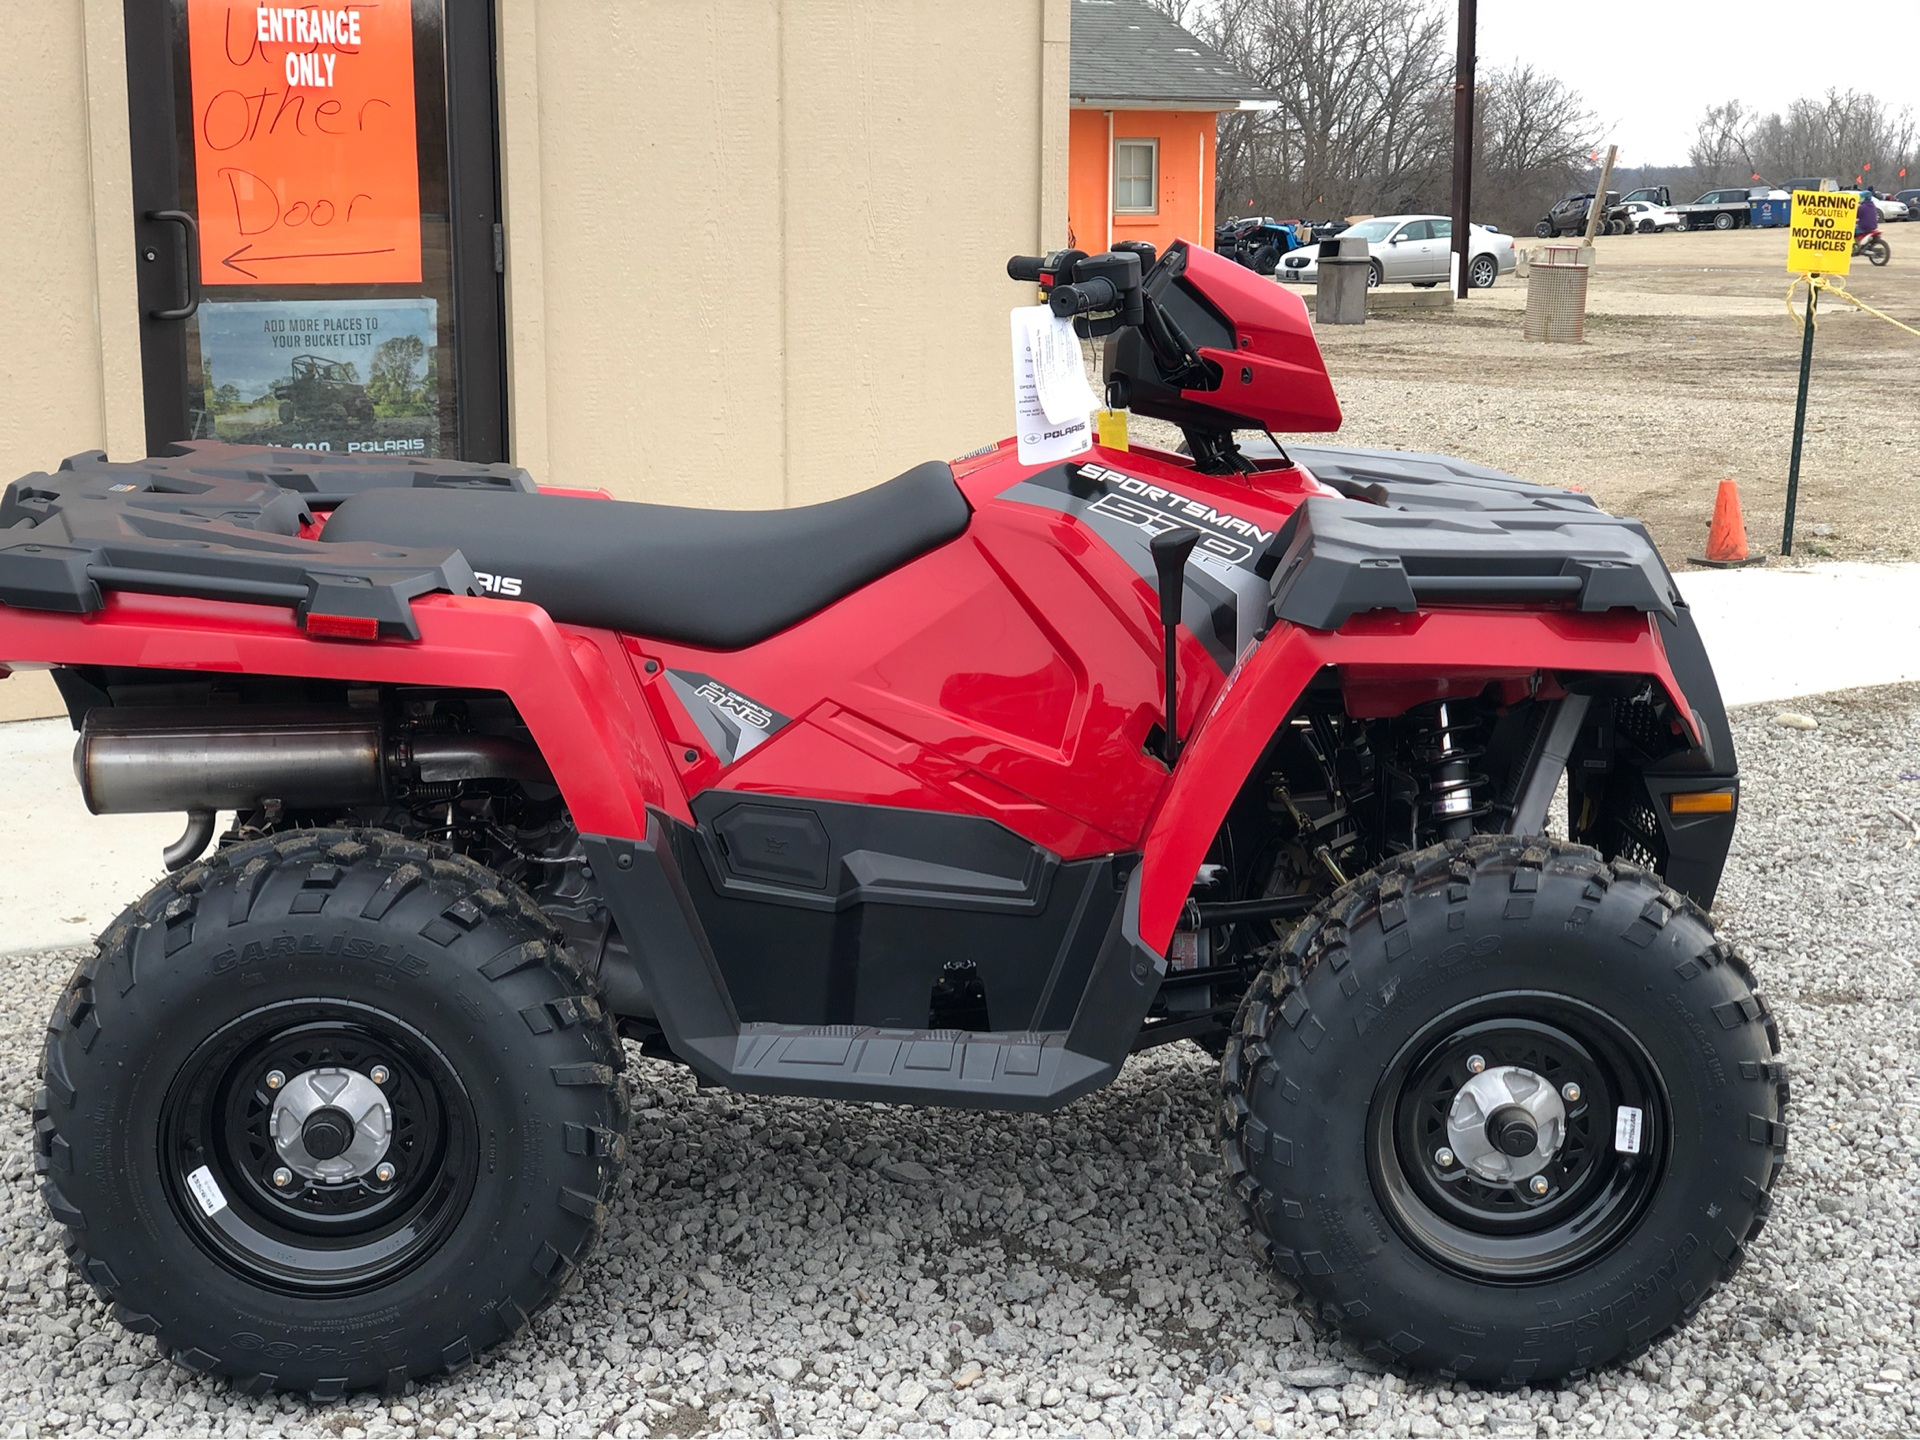 2020 Polaris Sportsman 570 in Attica, Indiana - Photo 2